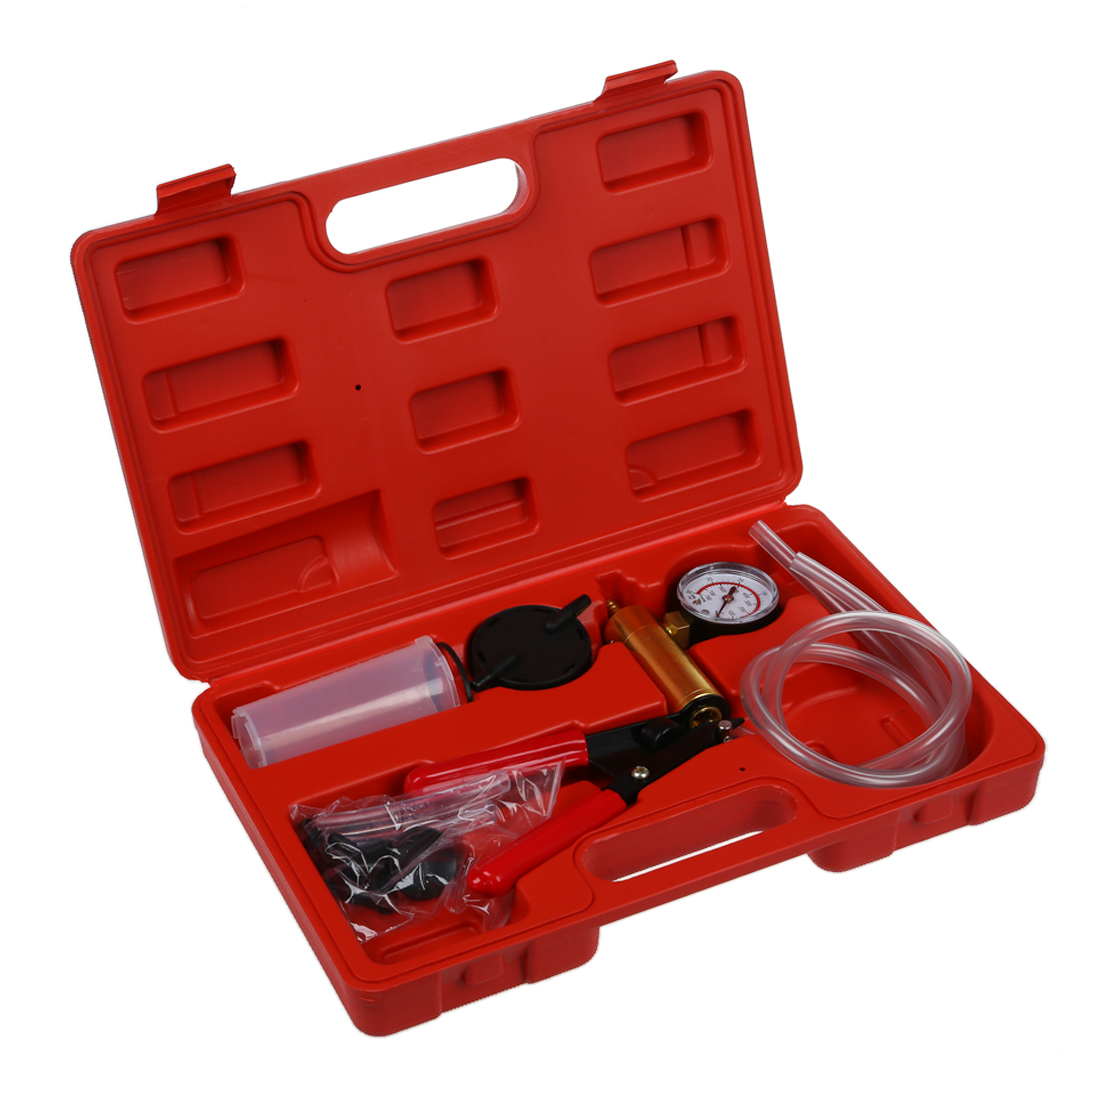 Vacuum Tester Hand Held Vacuum Pump Kit Car Tool Vacuum Testing Tool And Brake Bleeder Car Auto Pressure Tester Set With Box